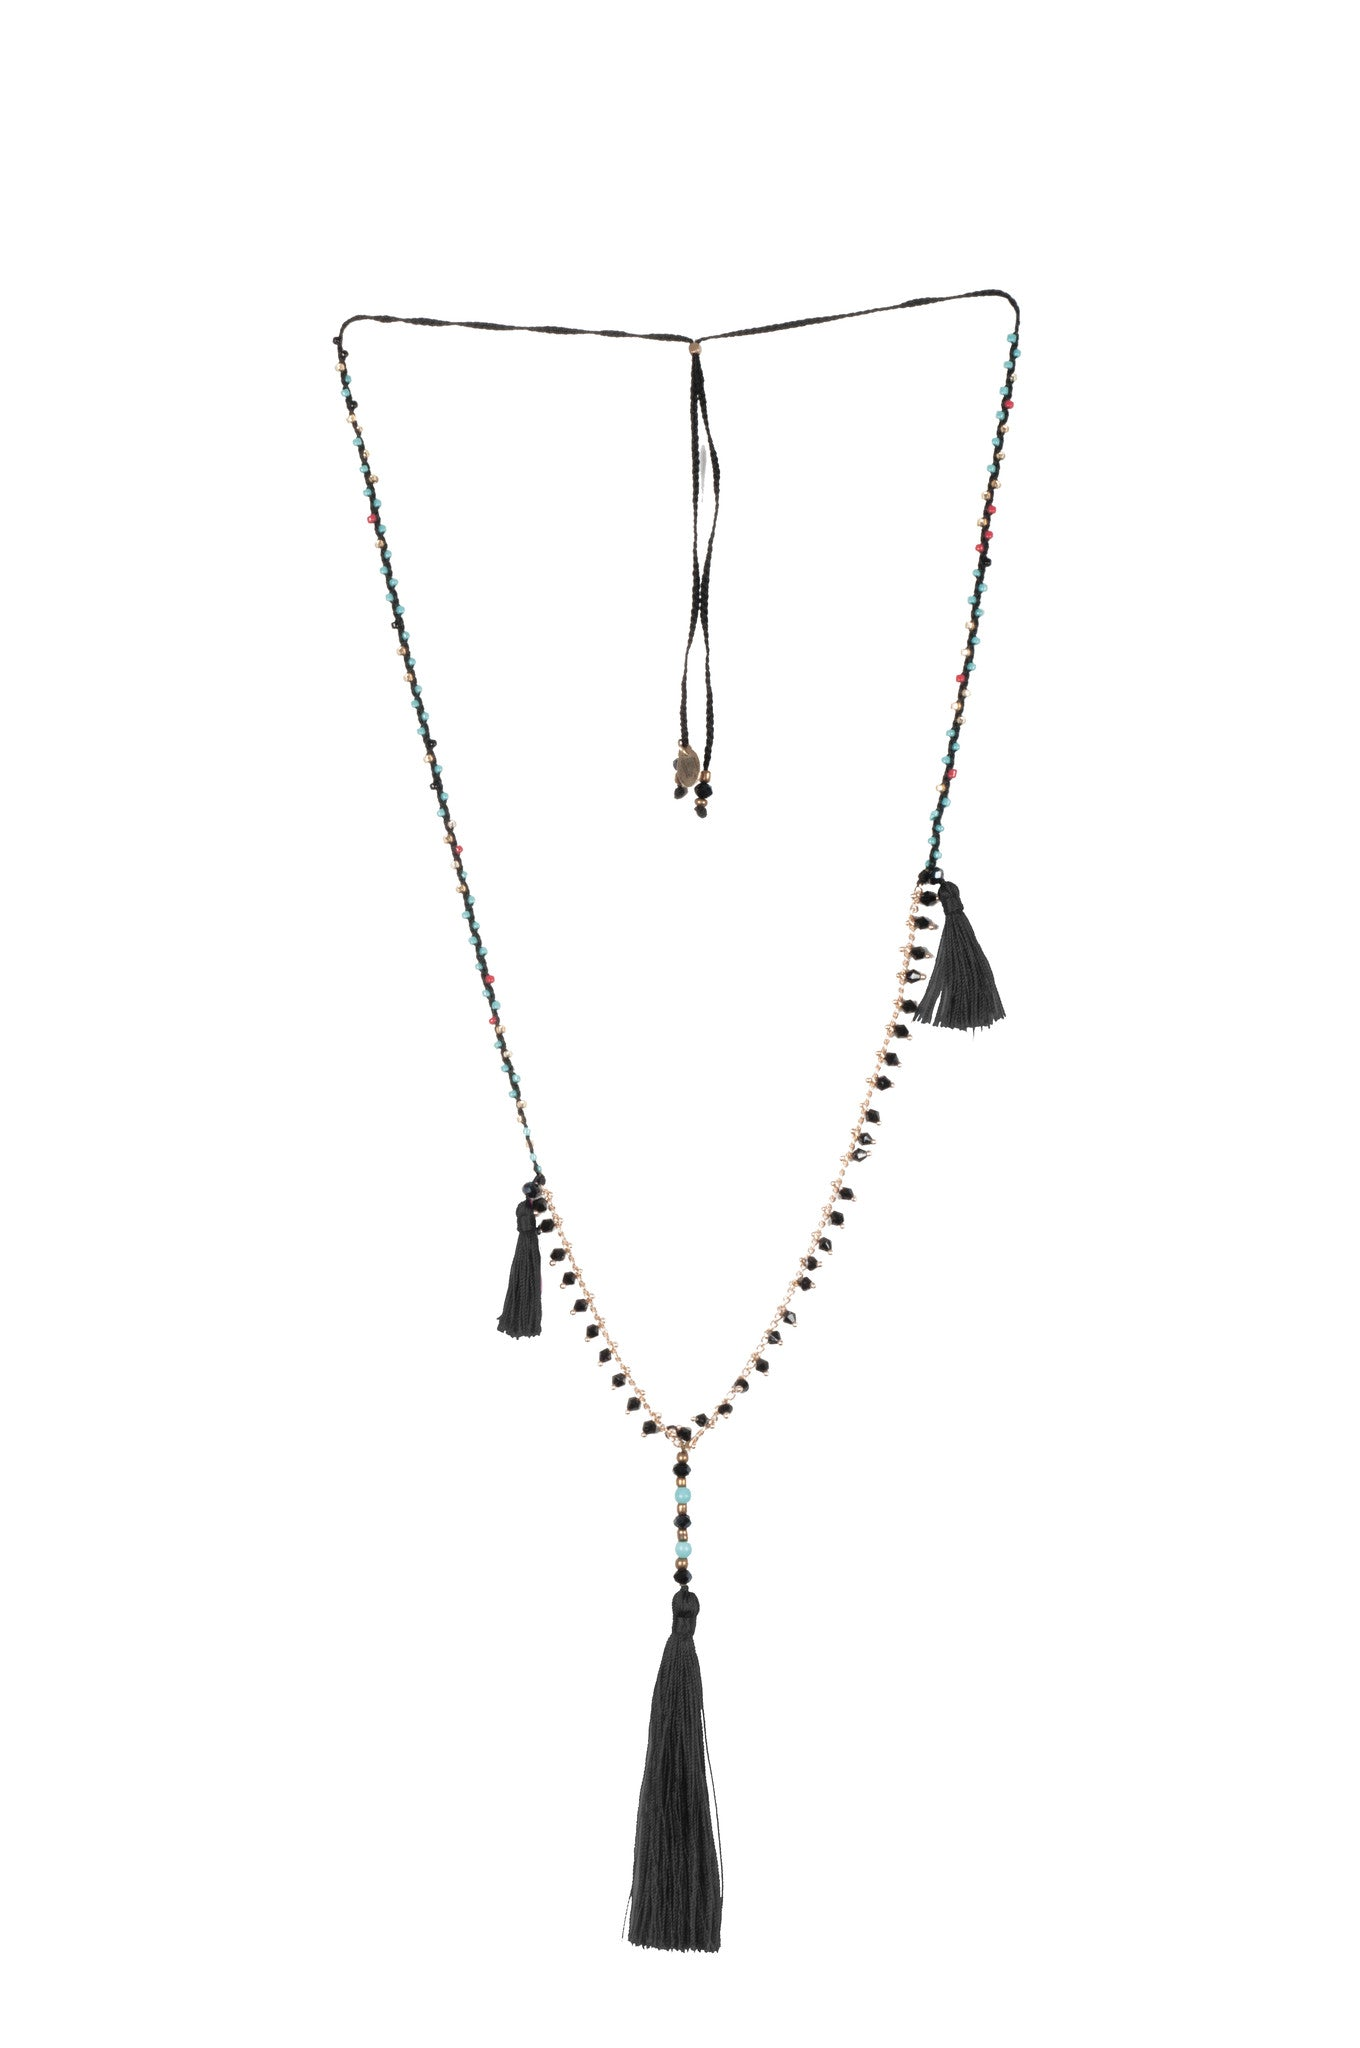 Black Adjustable Necklace made of delicate crystal pearls, Copper chain completed by three vibrant nylon tassels